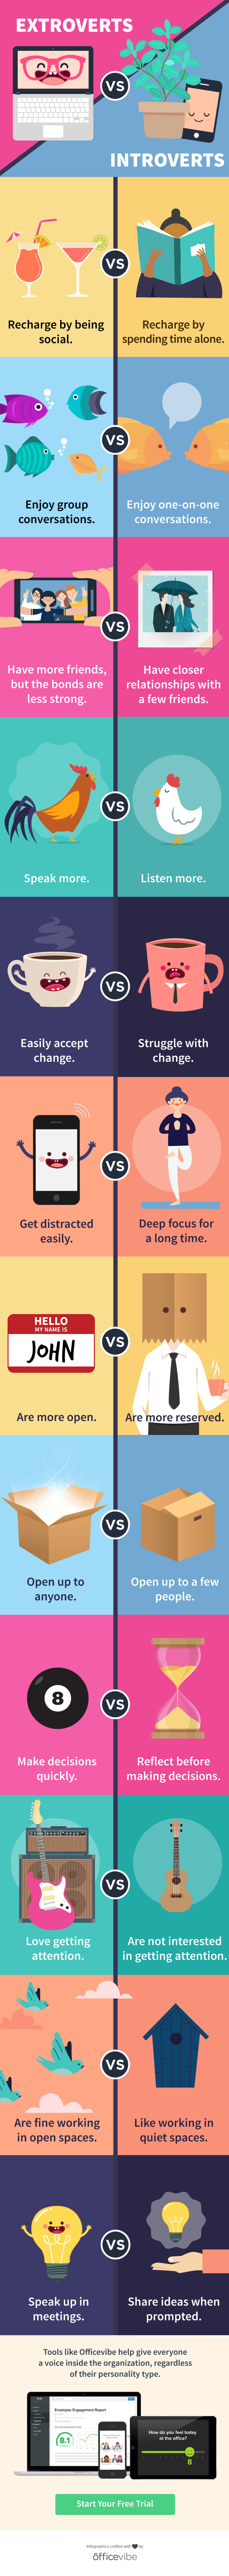 Different Folks, Different Strokes: Introverts Vs Extroverts - Infographic